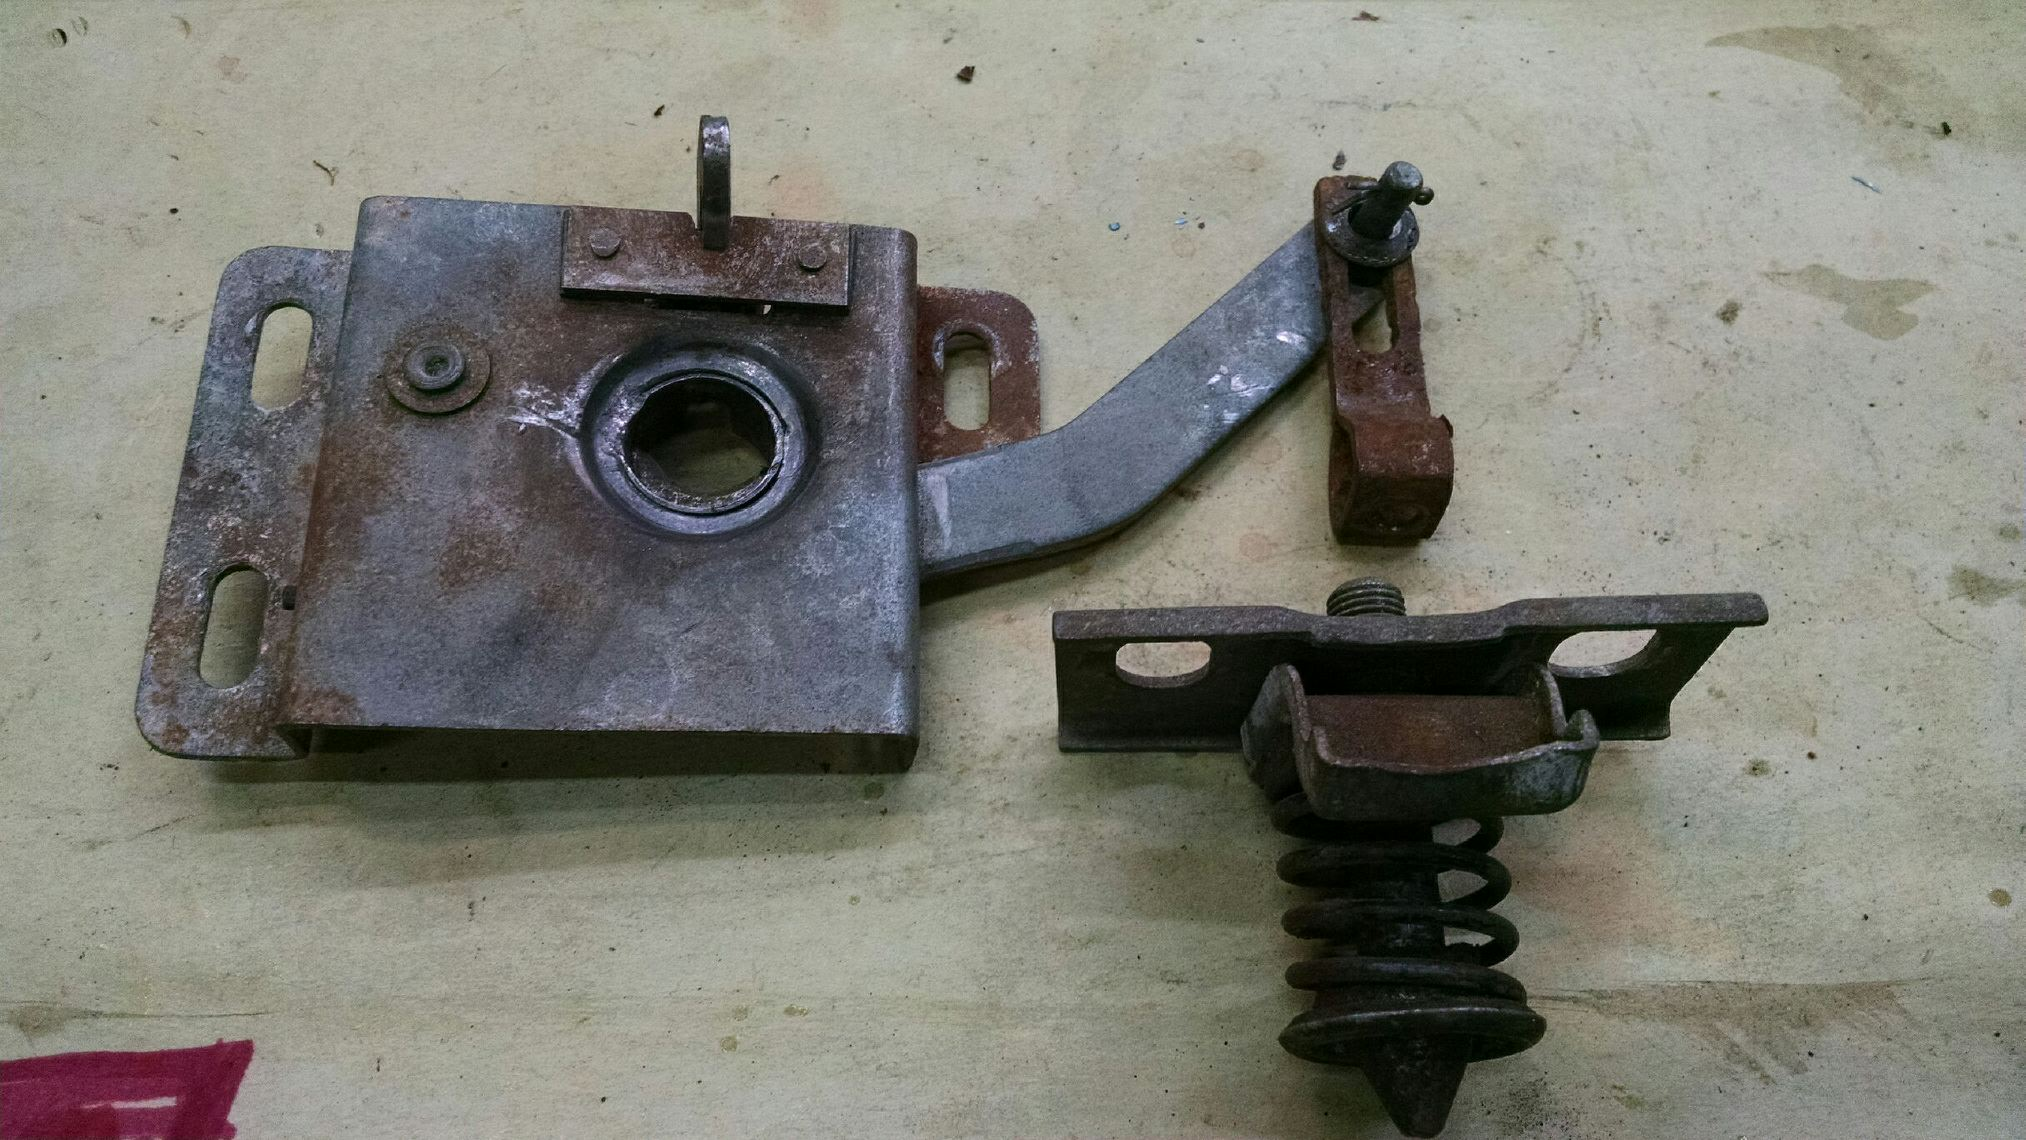 review of literature on hood latch Grip latch self locking clevis hook (gbk)  grip latch self locking clevis hook (gbk) grip latch swivel bronze bushing hook  please review our warning and use.